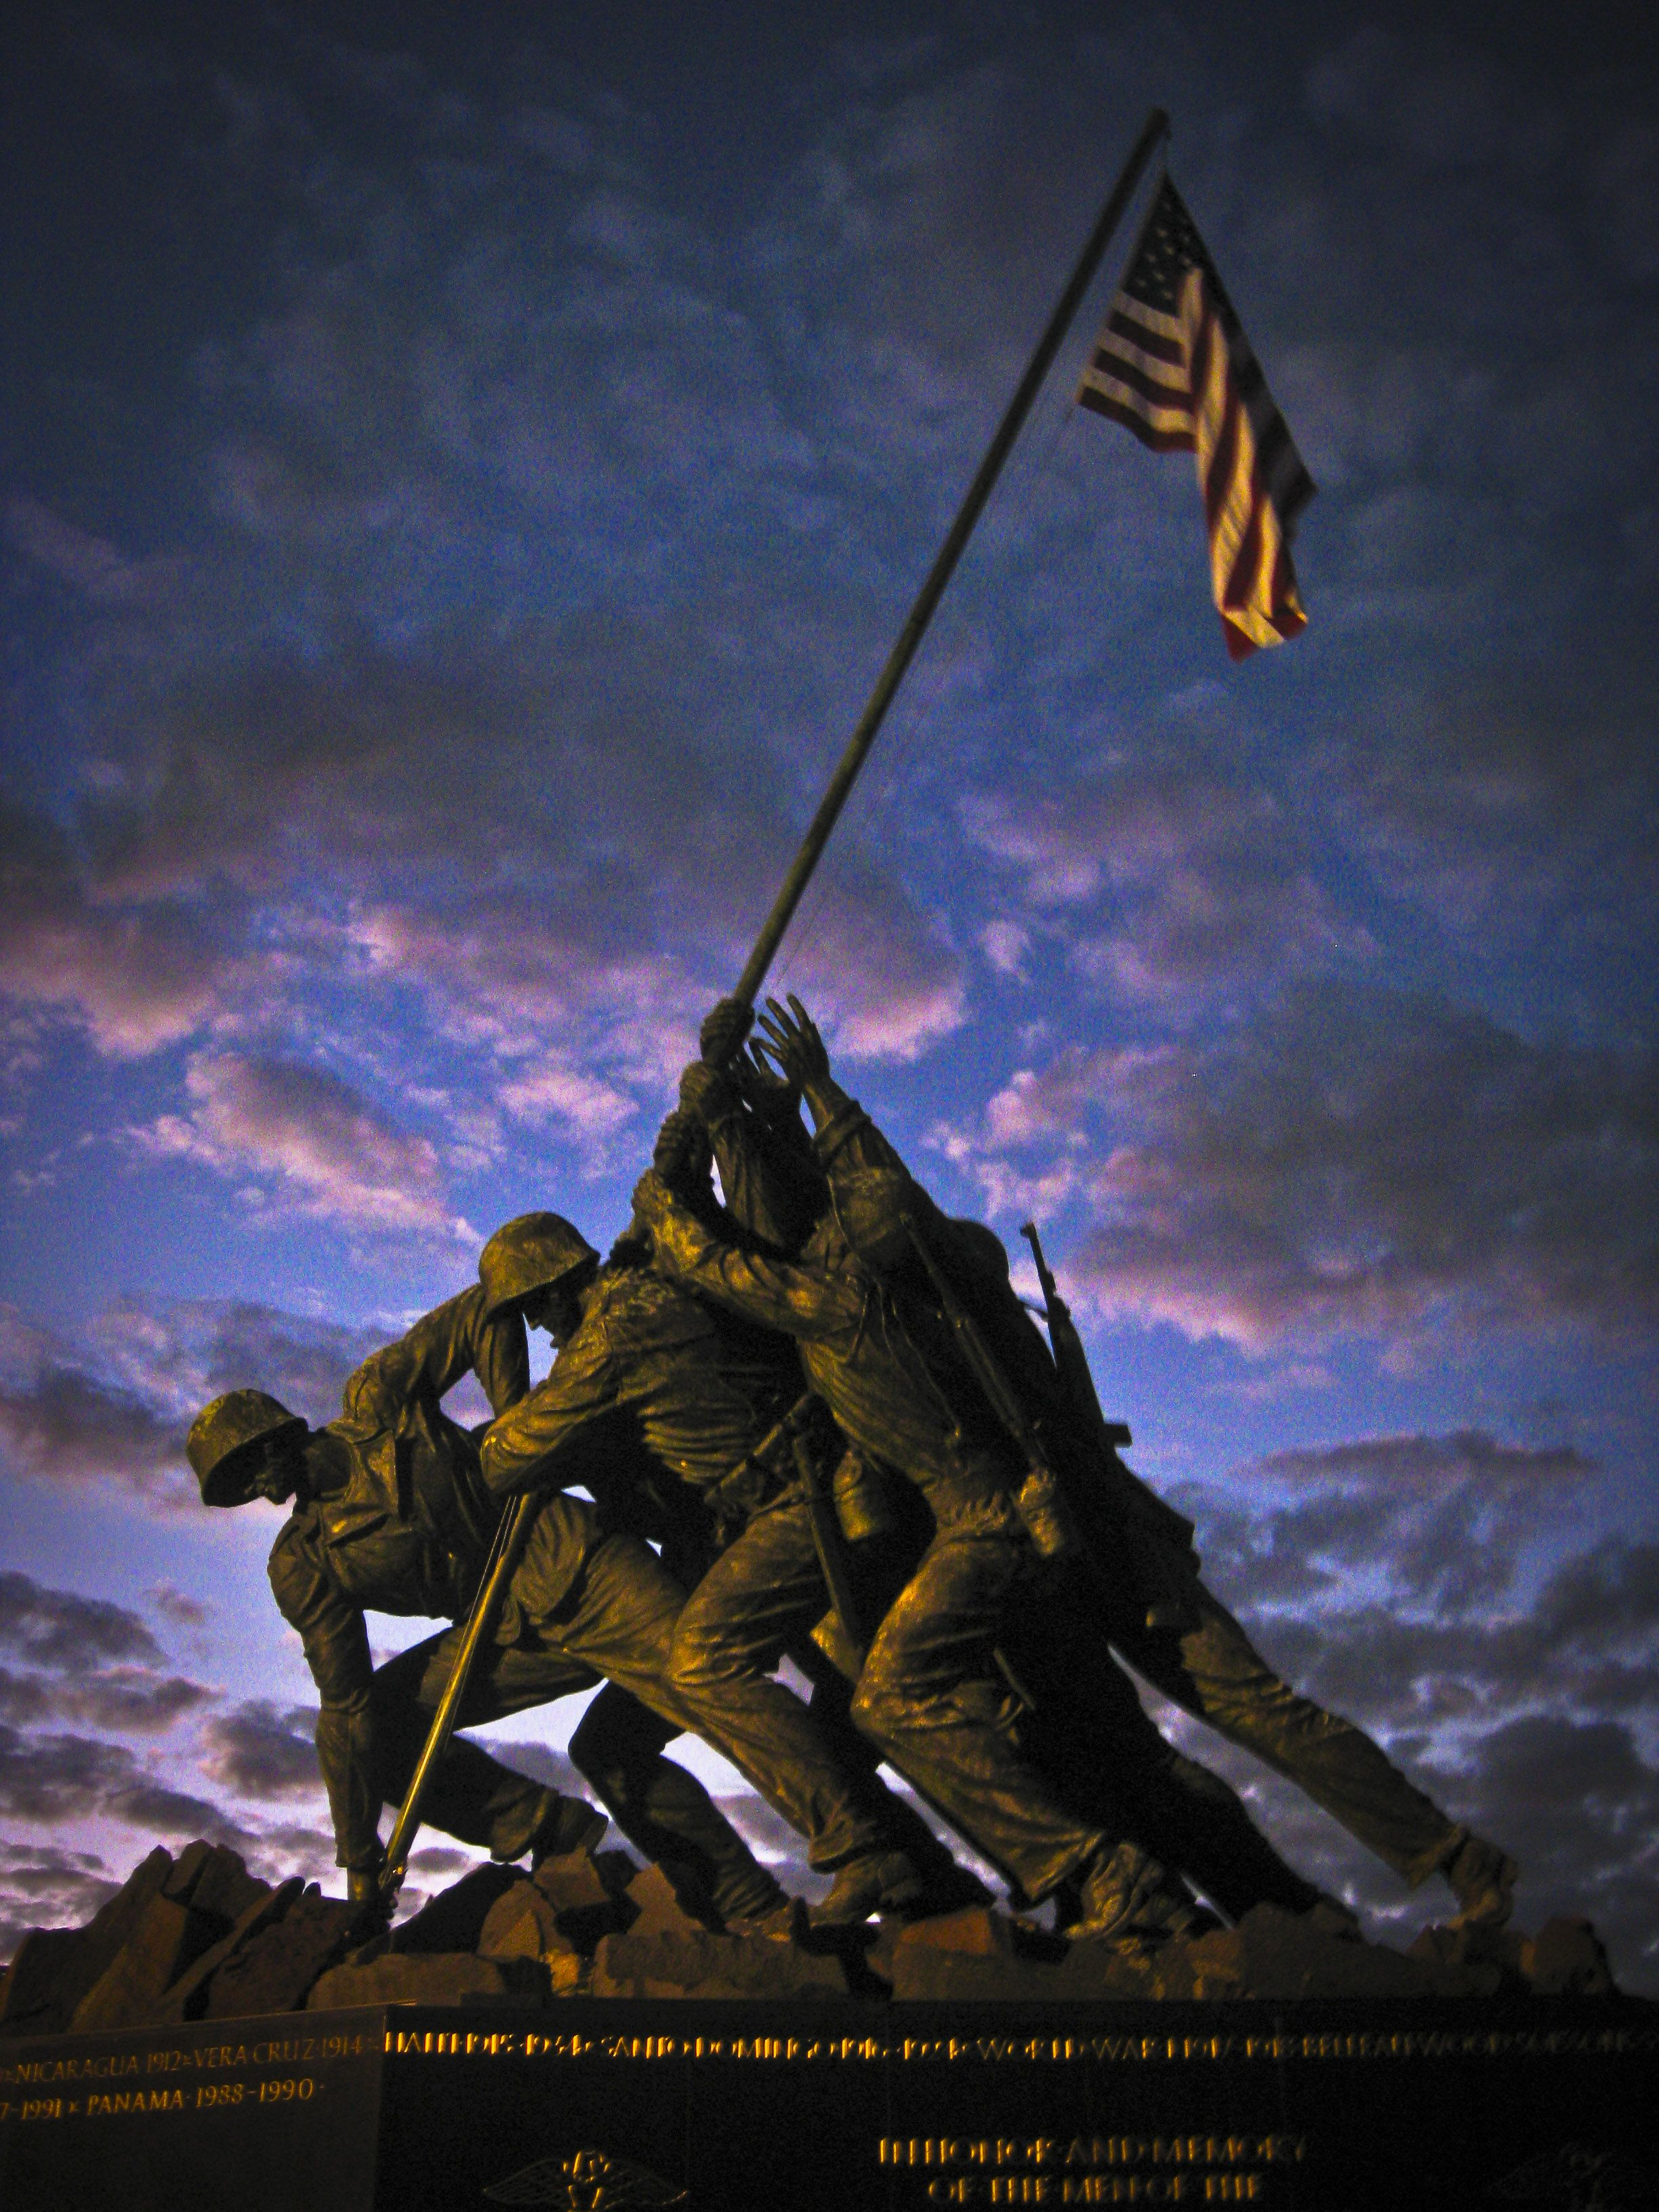 Us Marine Corps War Memorial (Iwo Jima)